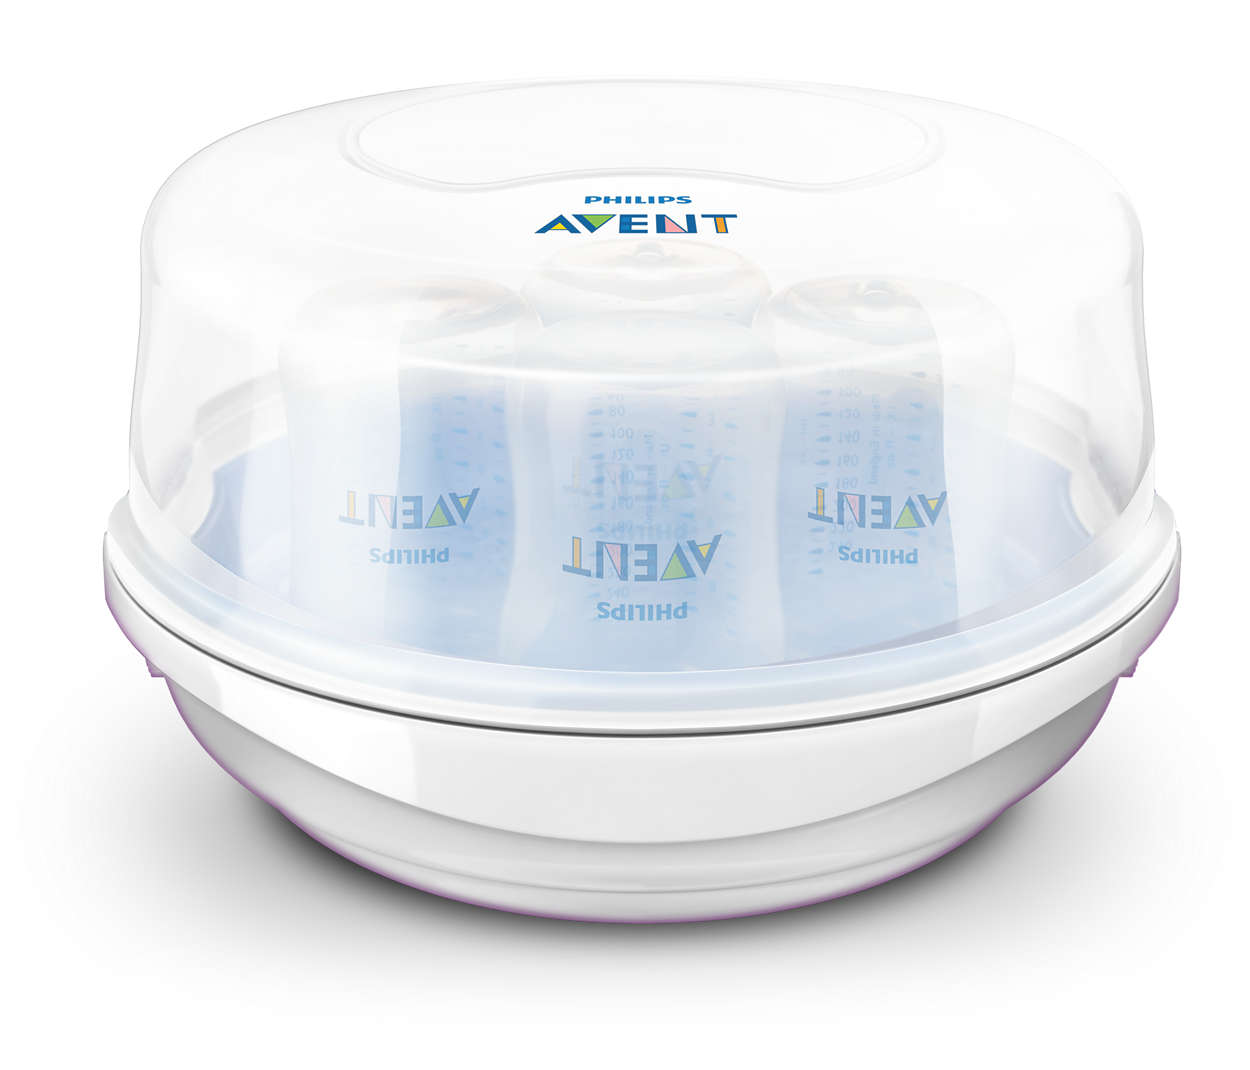 Microwave steam steriliser scf271/51 | avent.